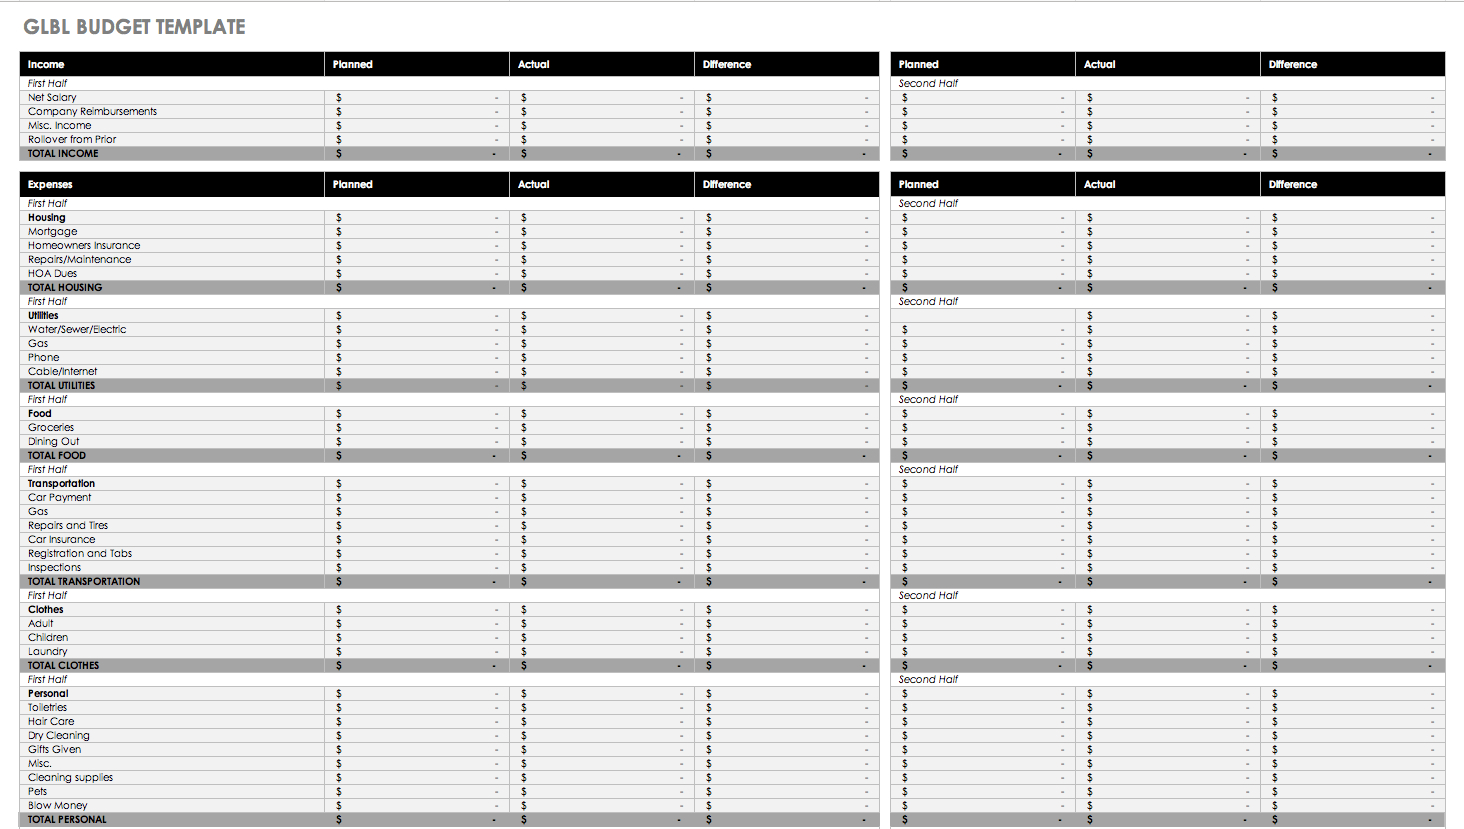 Budget Tracking Spreadsheet In Free Budget Templates In Excel For Any Use